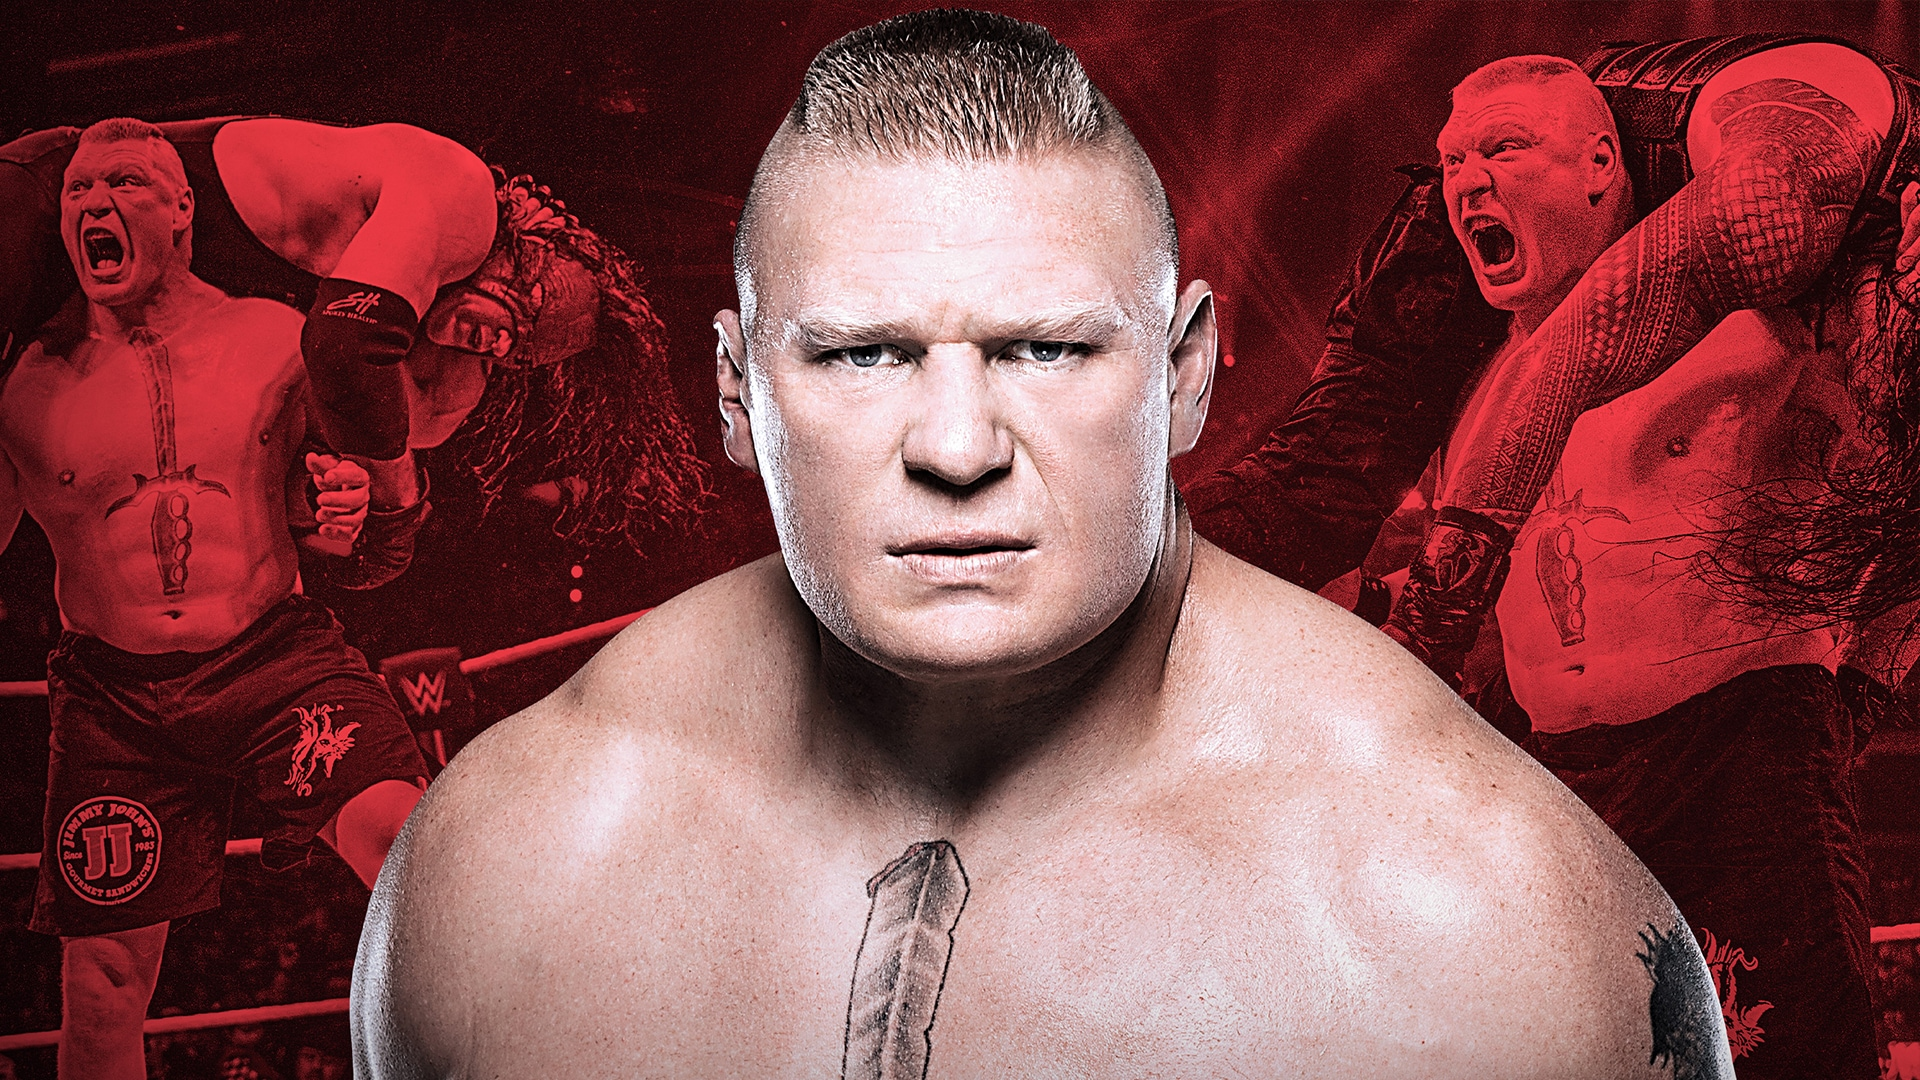 Brock Lesnar's Most Dominant Matches Part 1